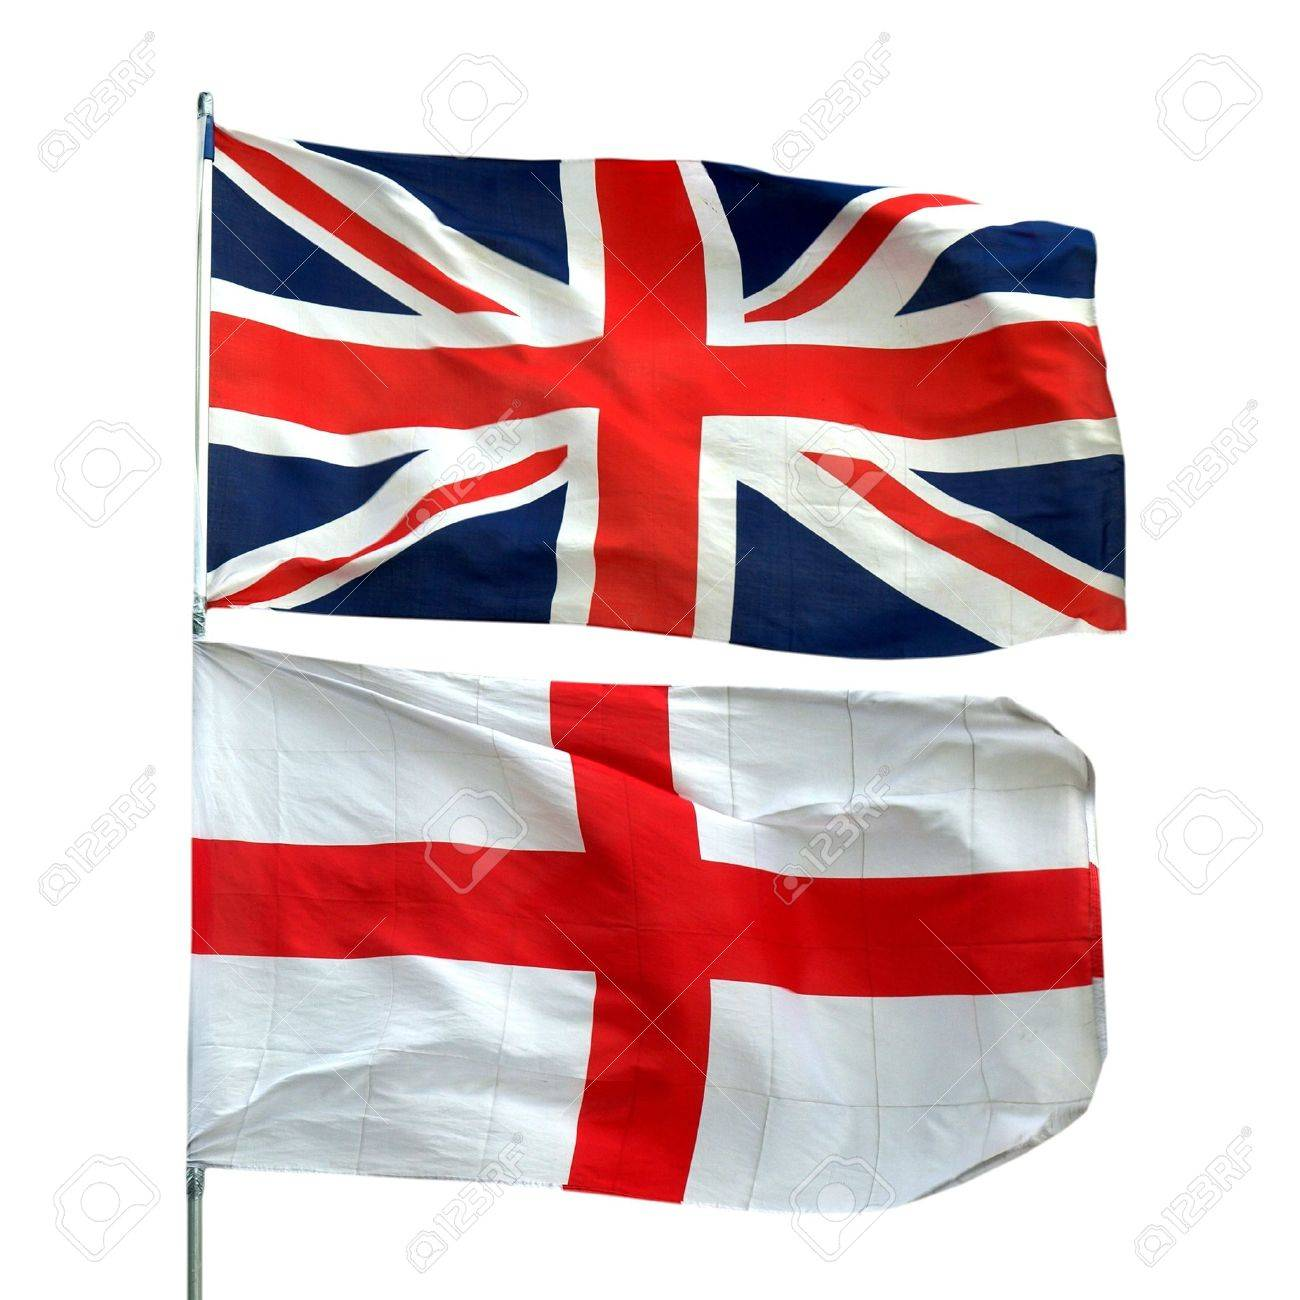 Flags of UK and Englan - isolated over white background Stock Photo - 7000605